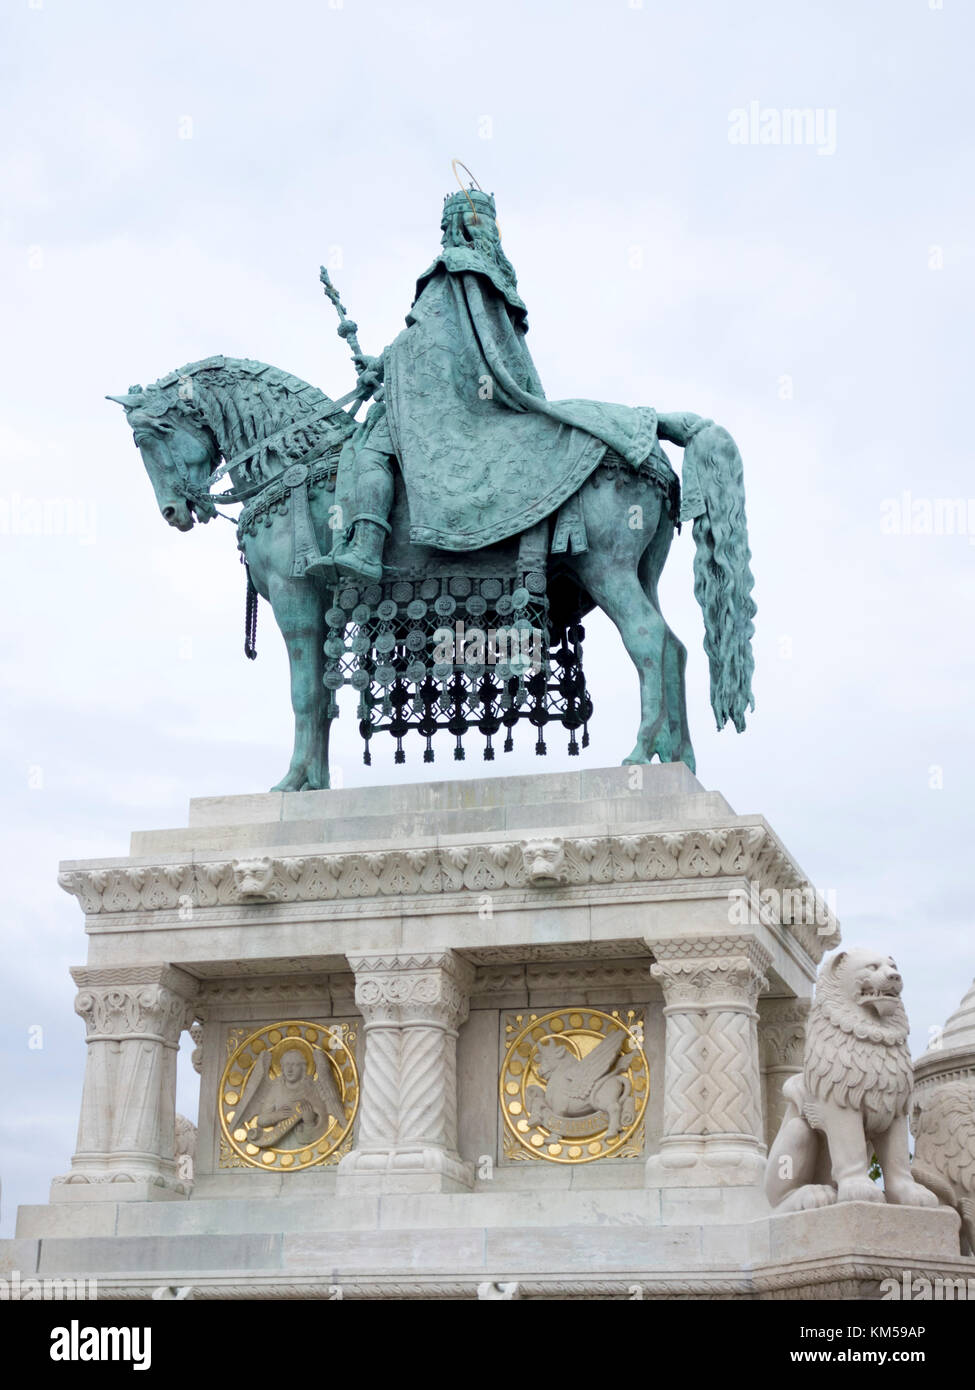 Statue of Stephen I of Hungary, Fisherman's bastion, Budapest Stock Photo